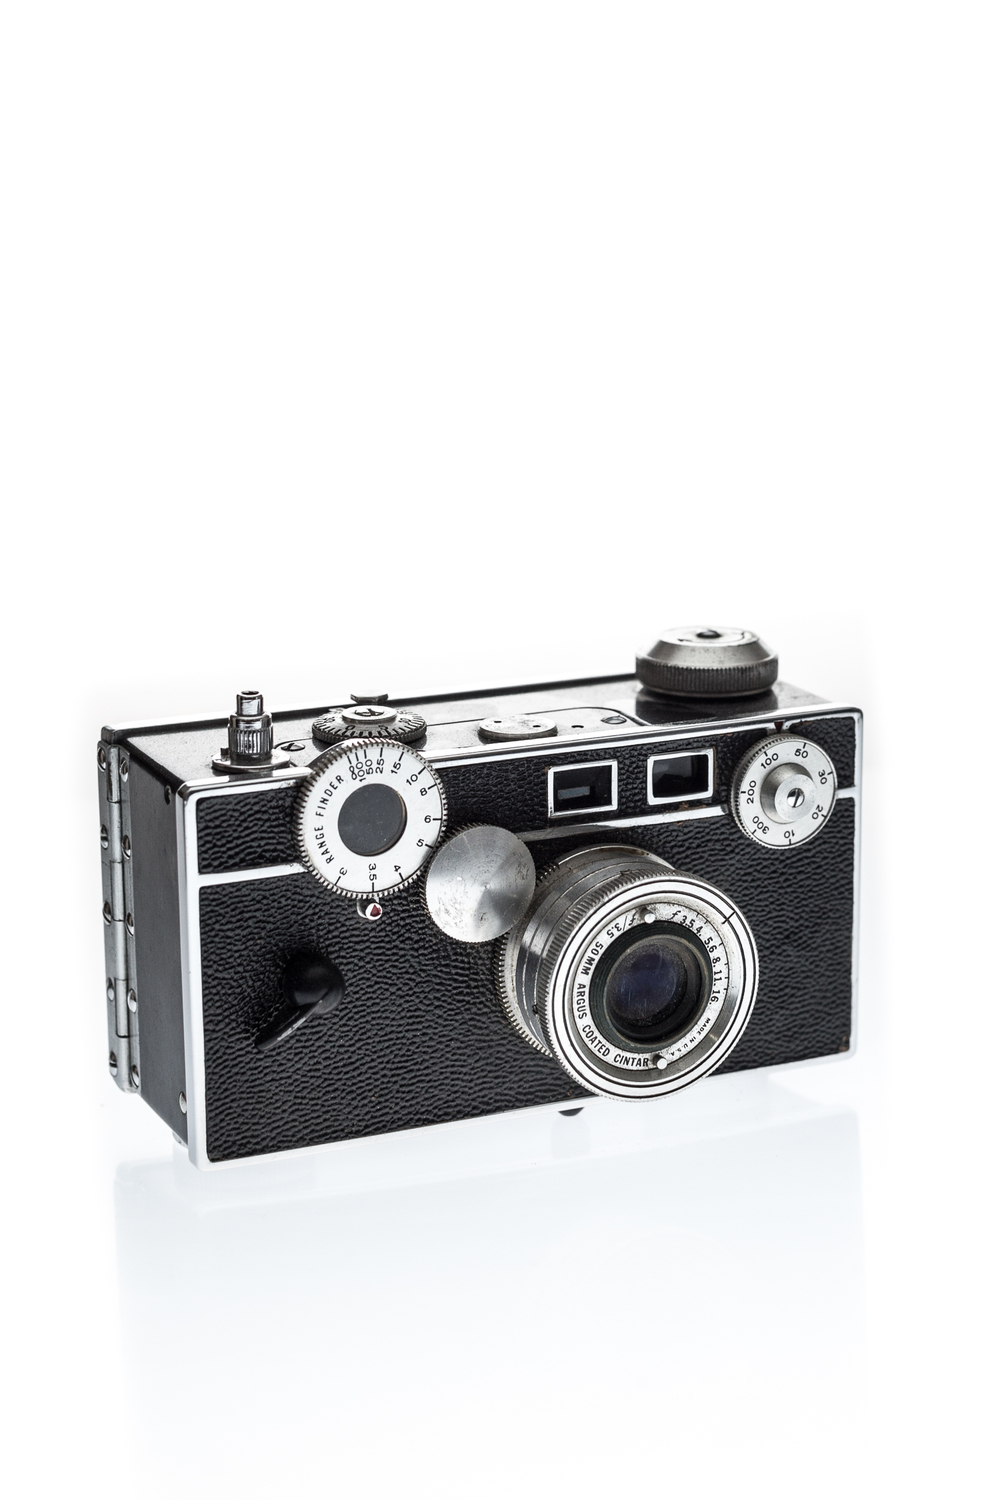 Kansas City Product Photographer - Vintage Camera